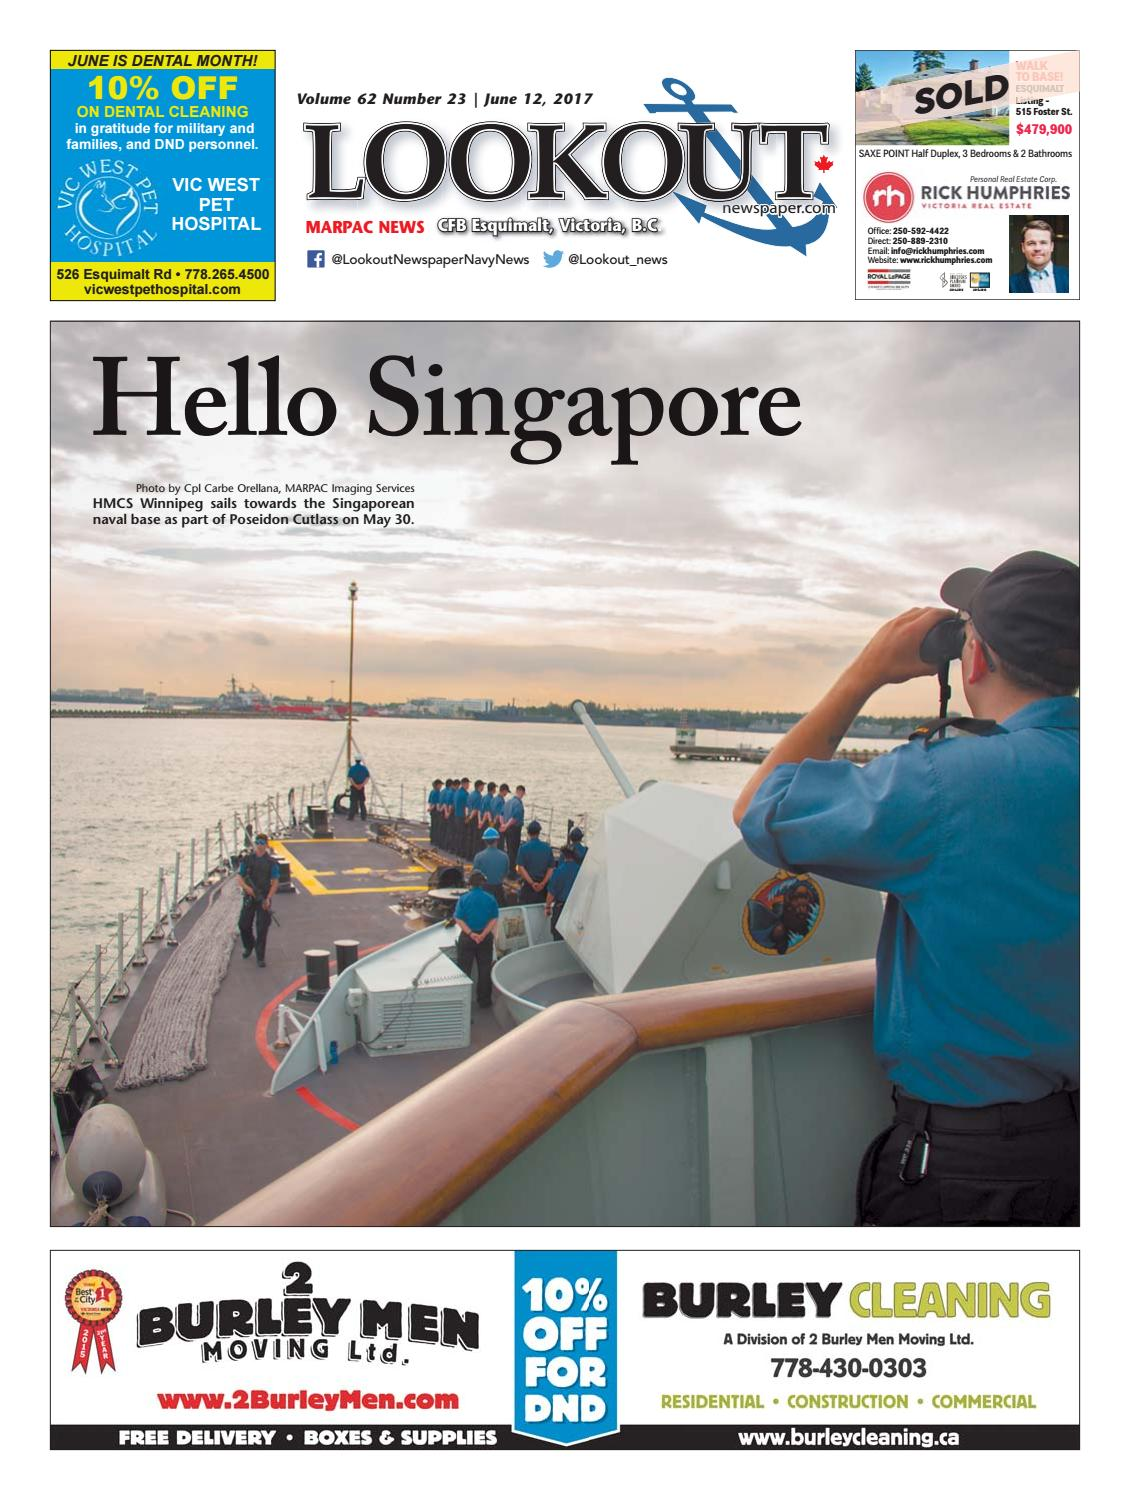 Lookout Newspaper, Issue 23 - June 12, 2017 by Lookout